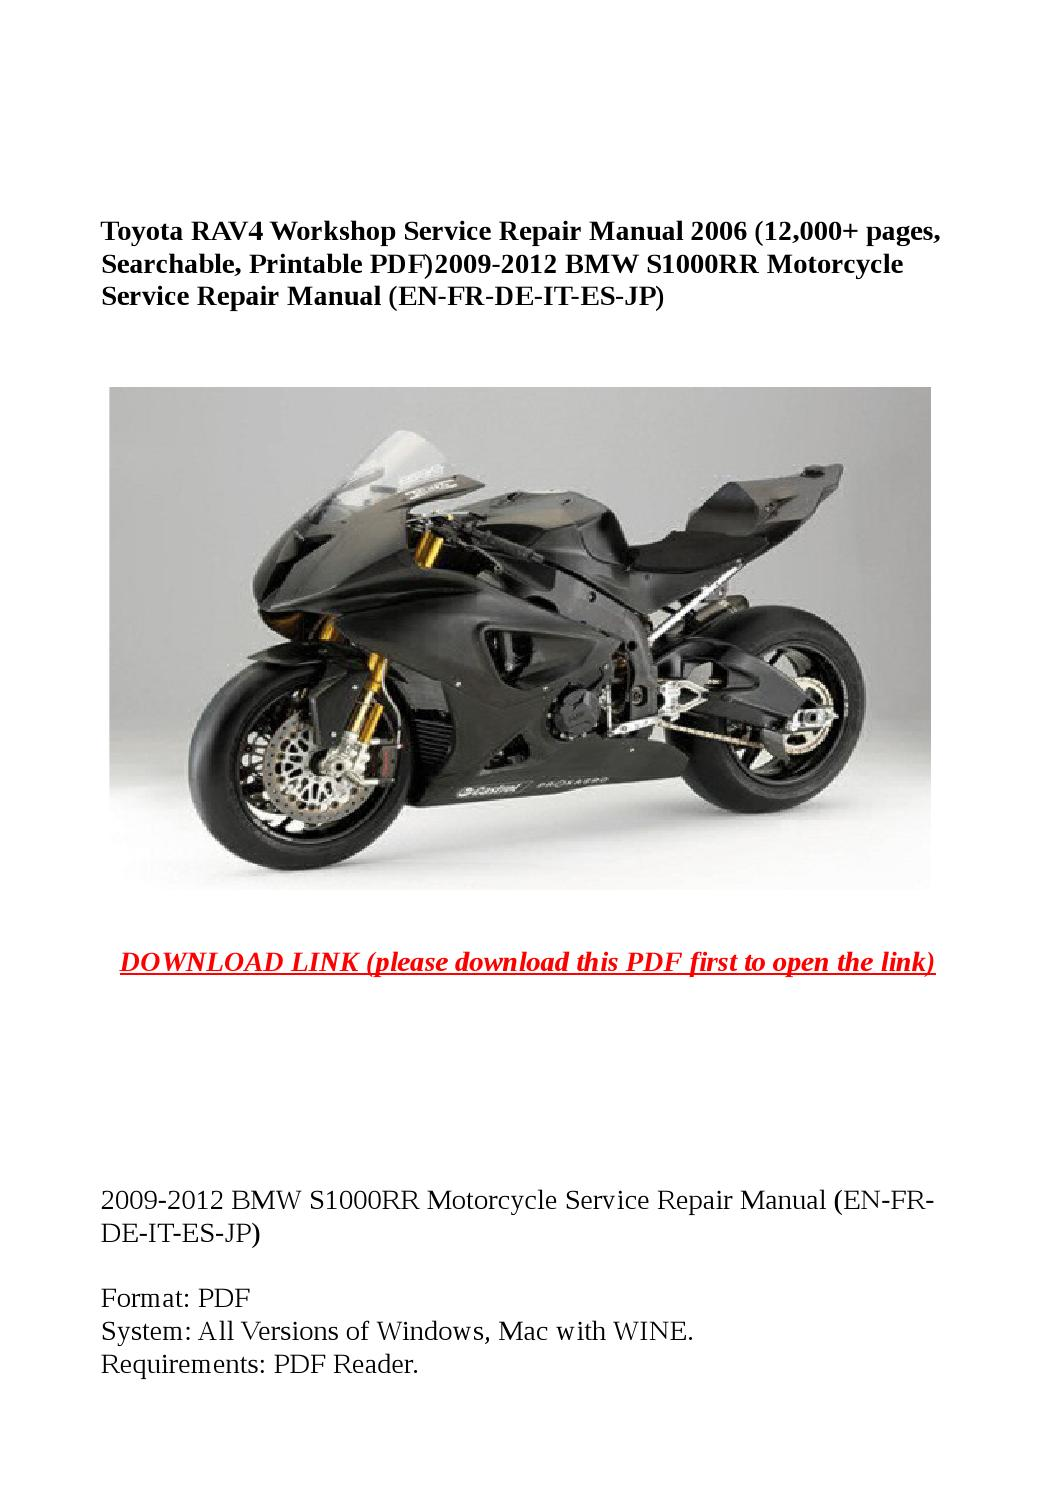 2009 2012 bmw s1000rr motorcycle service repair manual (en .